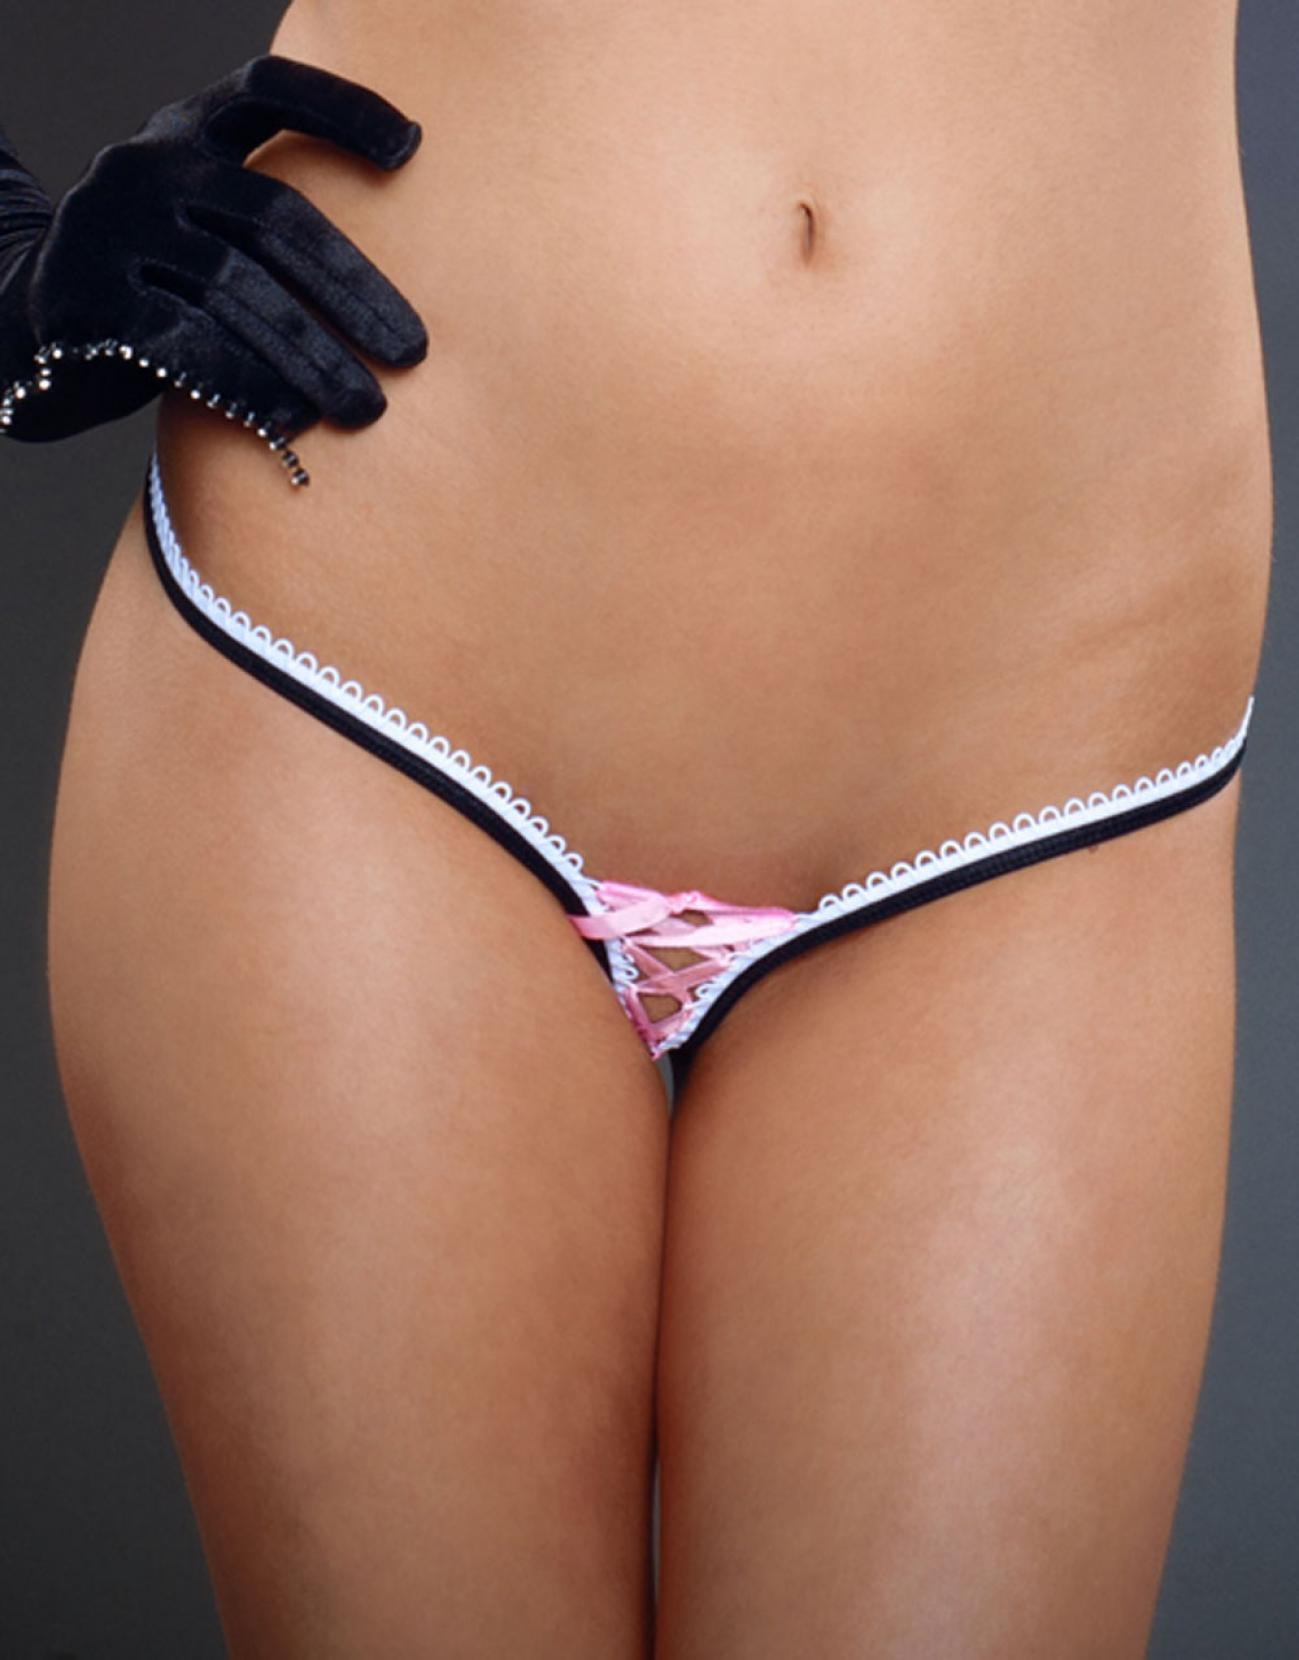 Sexy camel toe of wedgie gils in tight panties and skinny